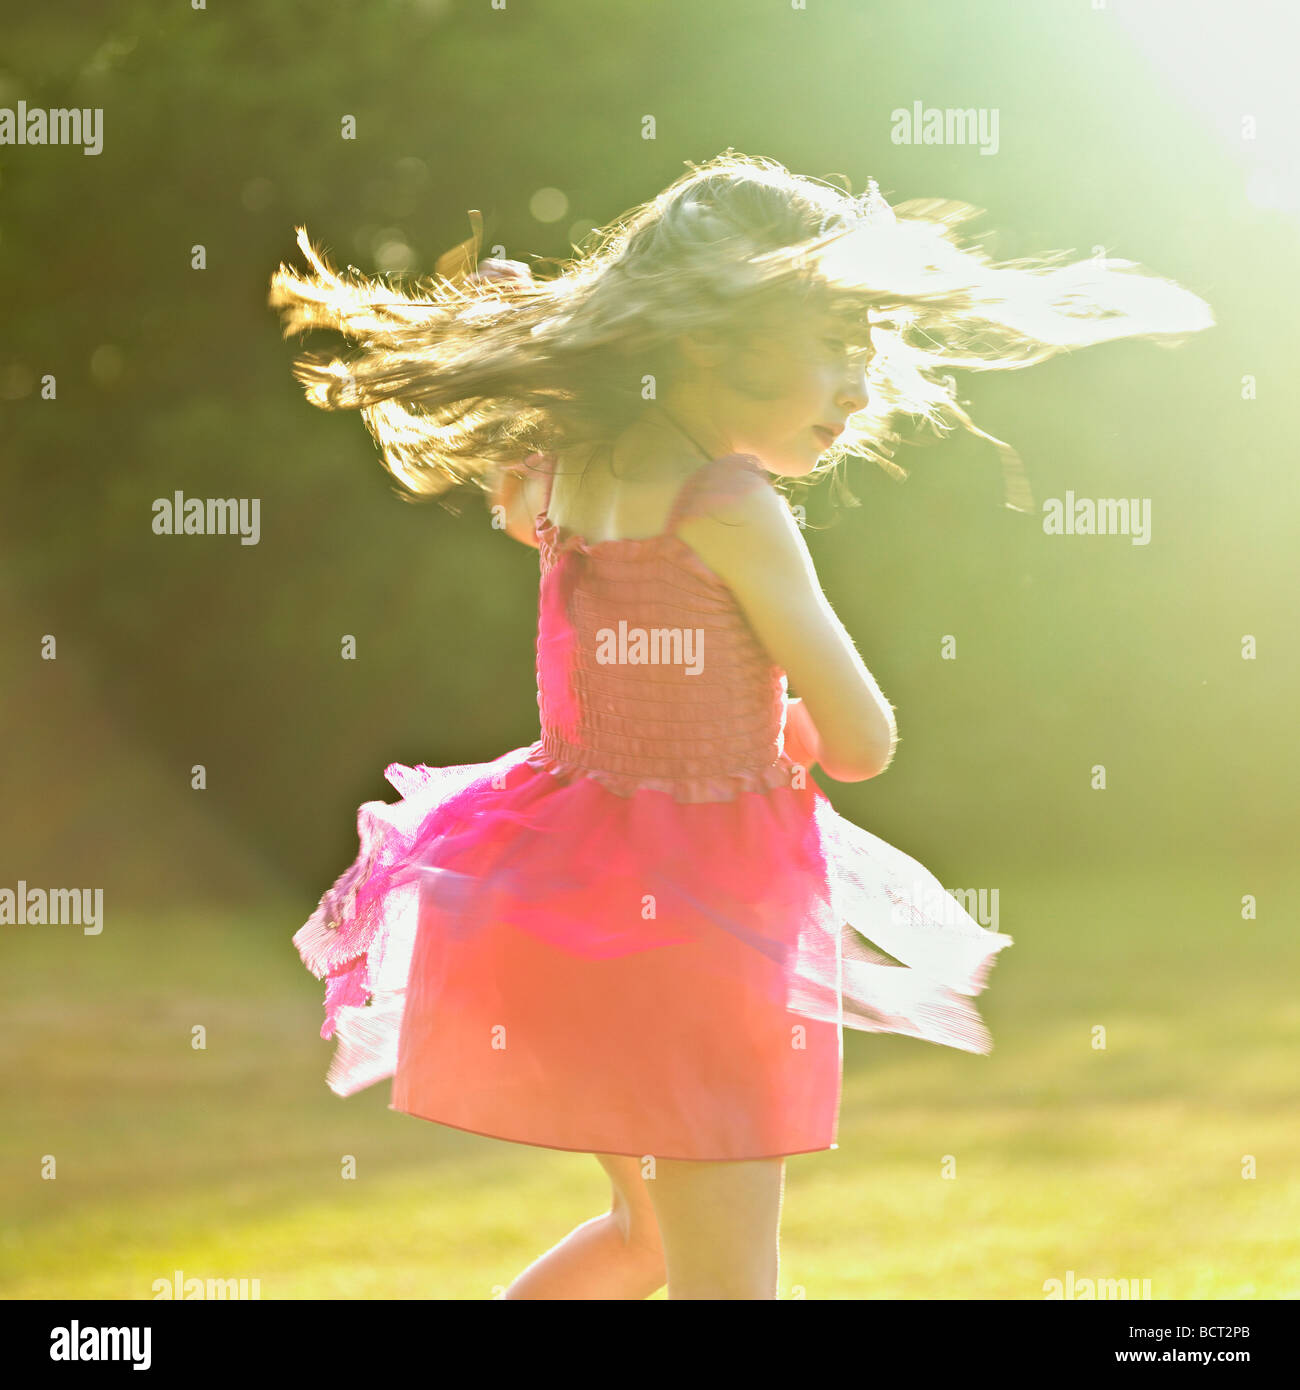 Young girl dancing in the summer sun. Stock Photo